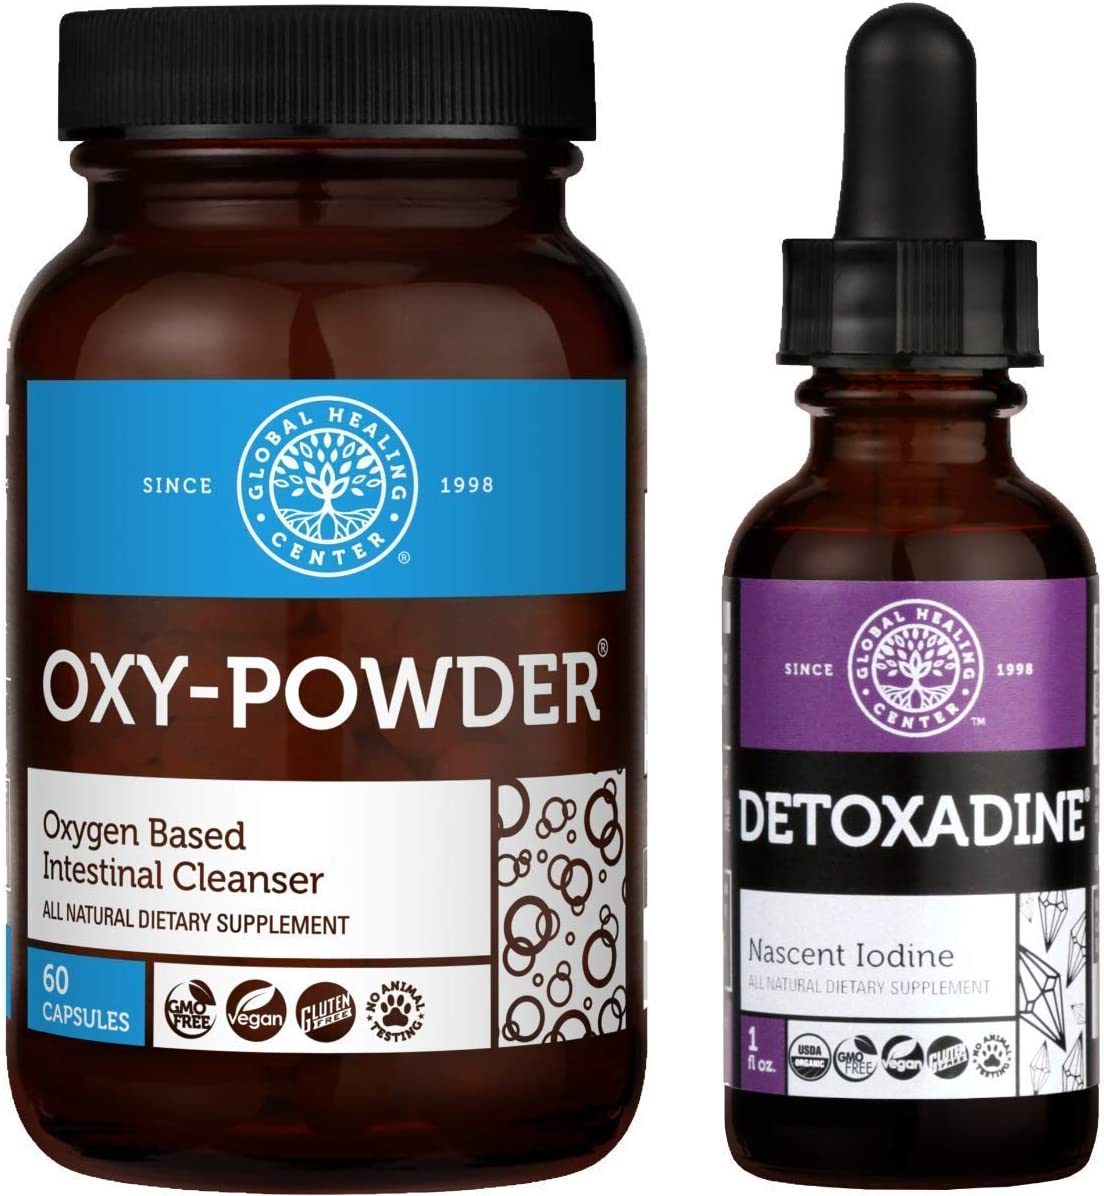 Global Healing Oxy-Powder & Detoxadine Detox Cleanse Kit - Natural, Oxygen Based Colon Cleanser of Intestinal Tract & Organic Nascent Liquid Iodine Supplement Drops For Thyroid - 60 Capsules & 1 Fl Oz